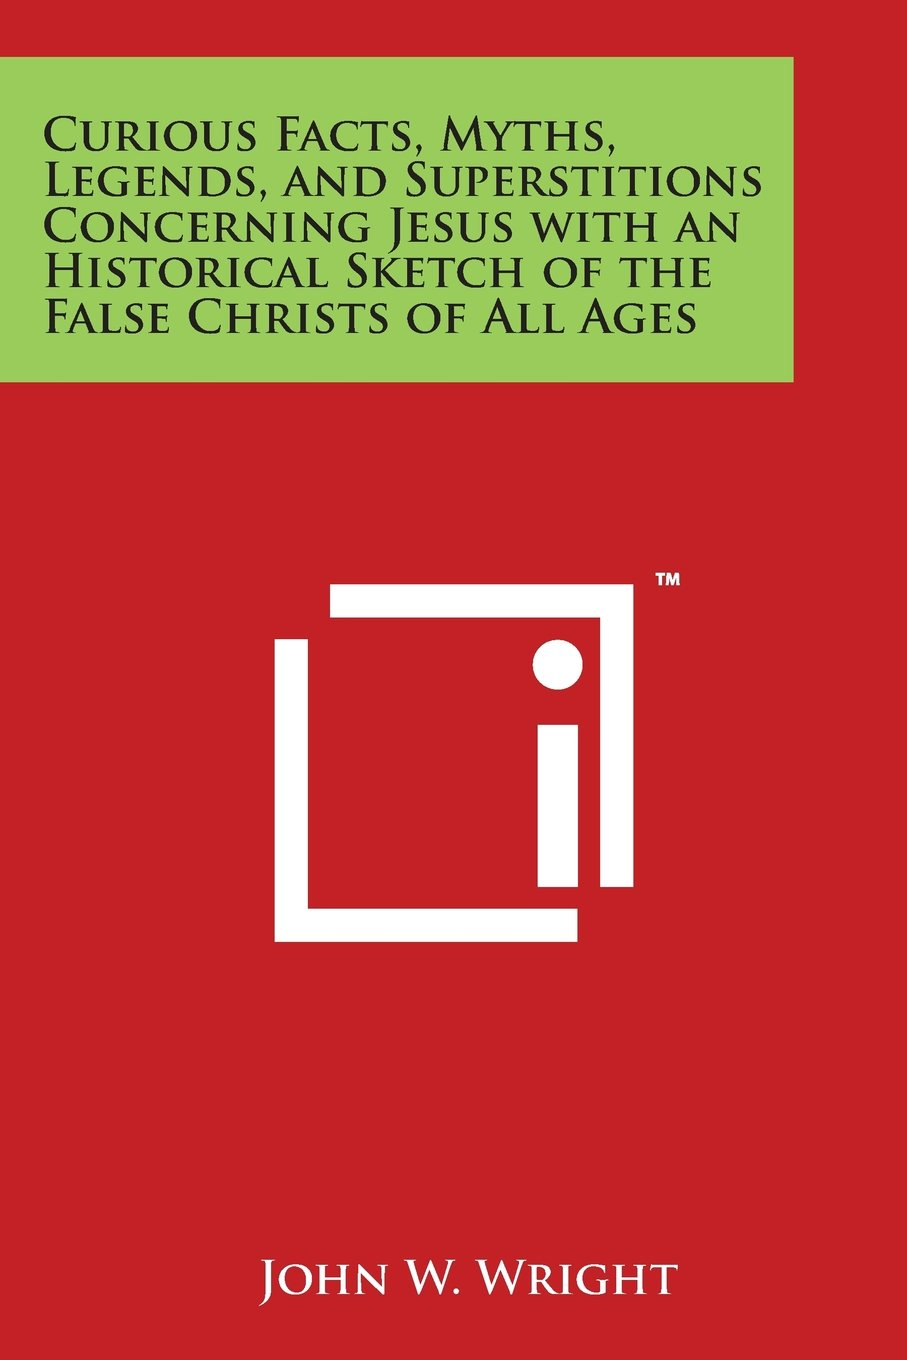 Download Curious Facts, Myths, Legends, and Superstitions Concerning Jesus with an Historical Sketch of the False Christs of All Ages PDF